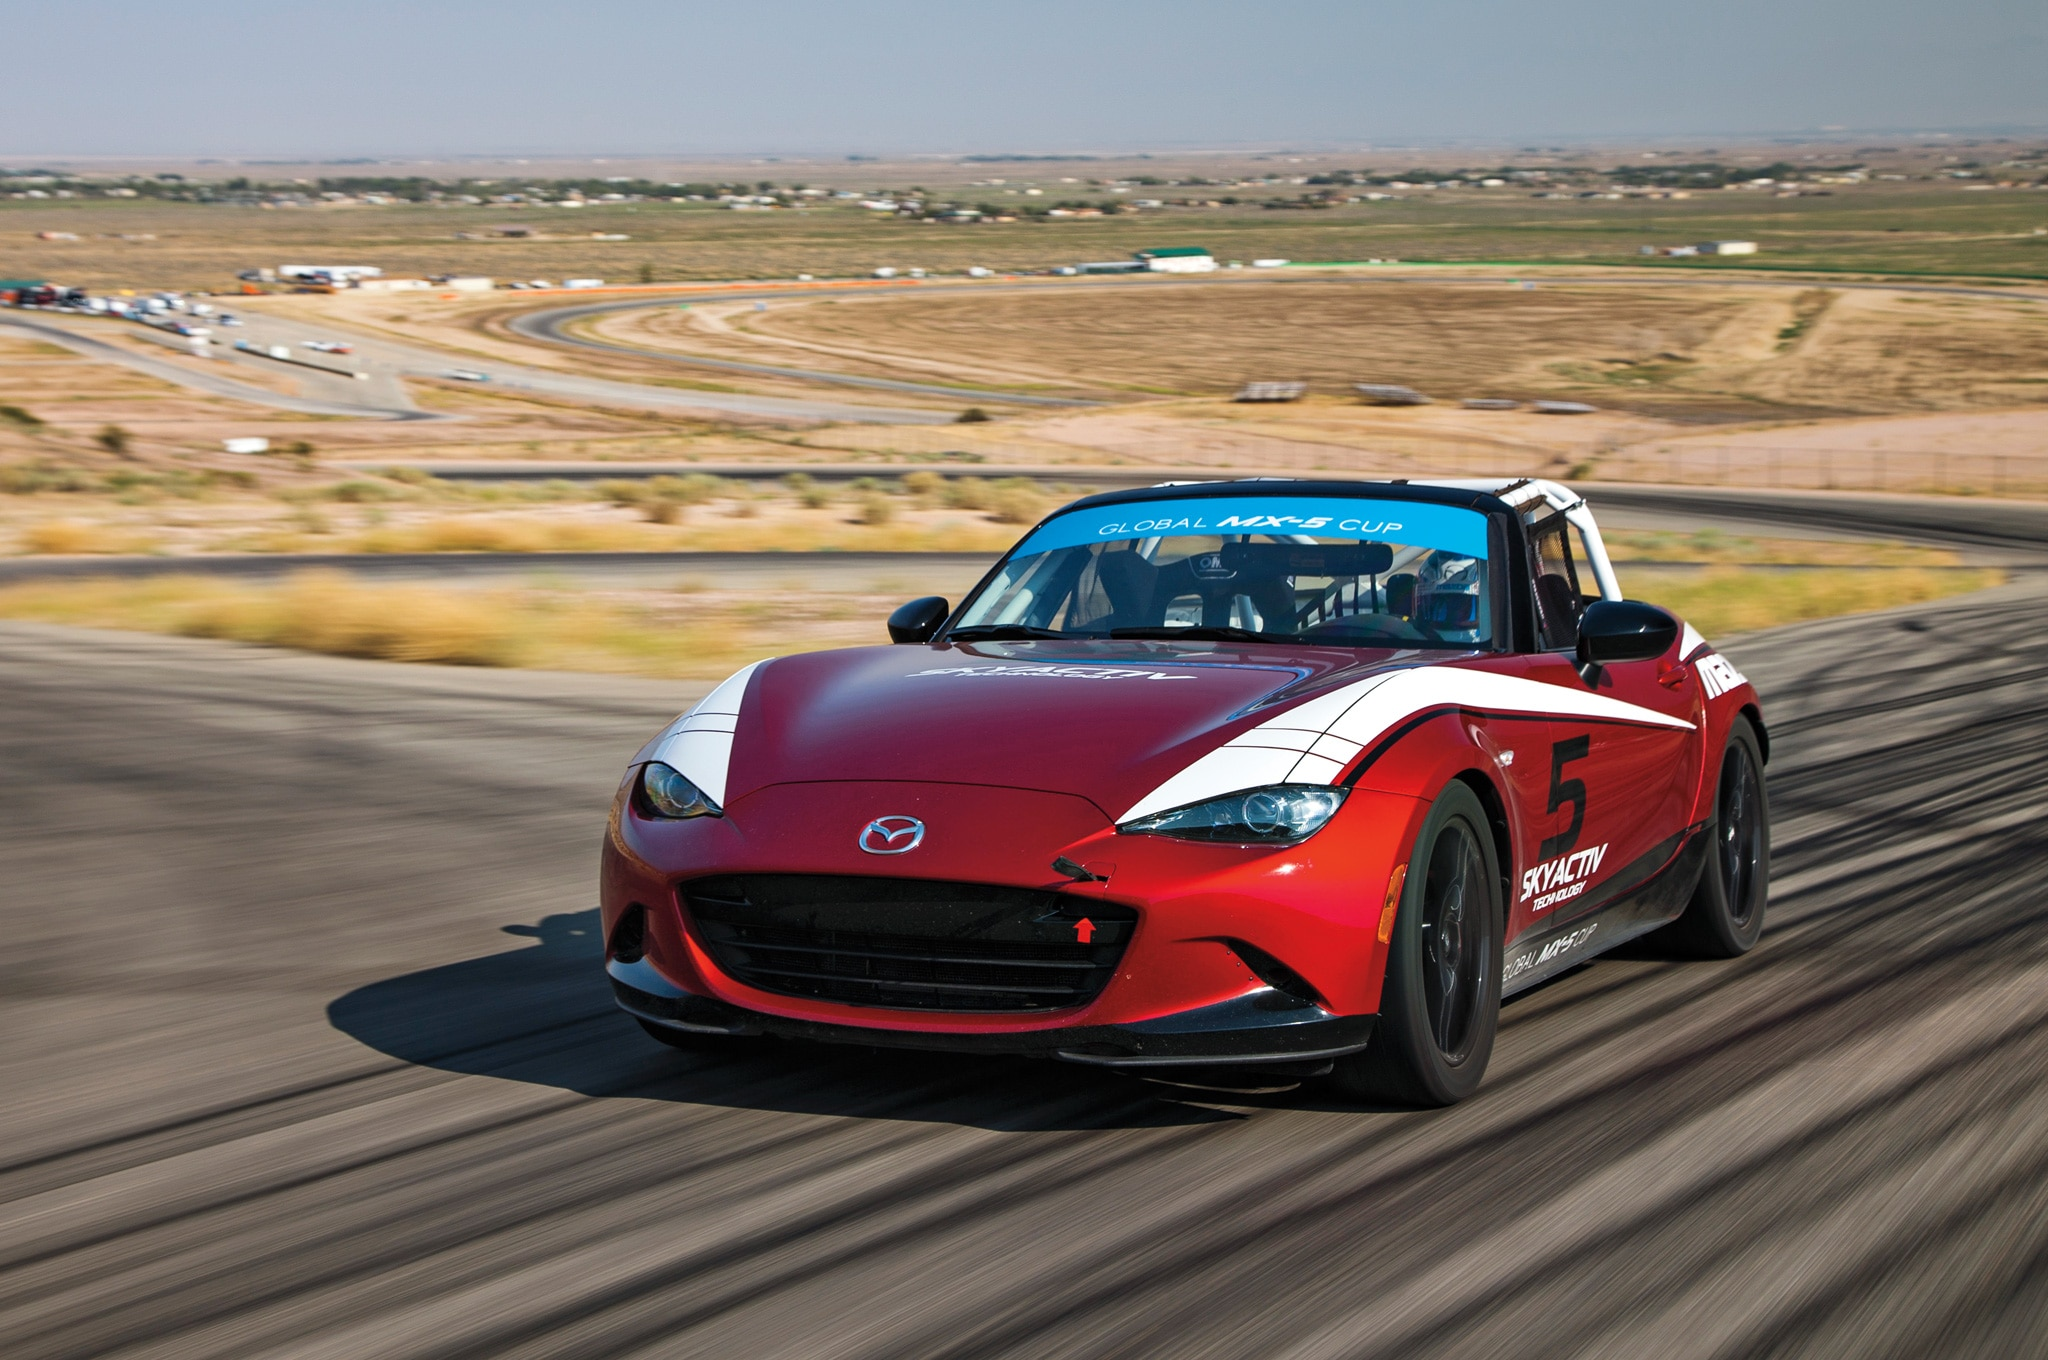 Four Times a Racer: Driving Every Mazda MX-5 Miata Race Car